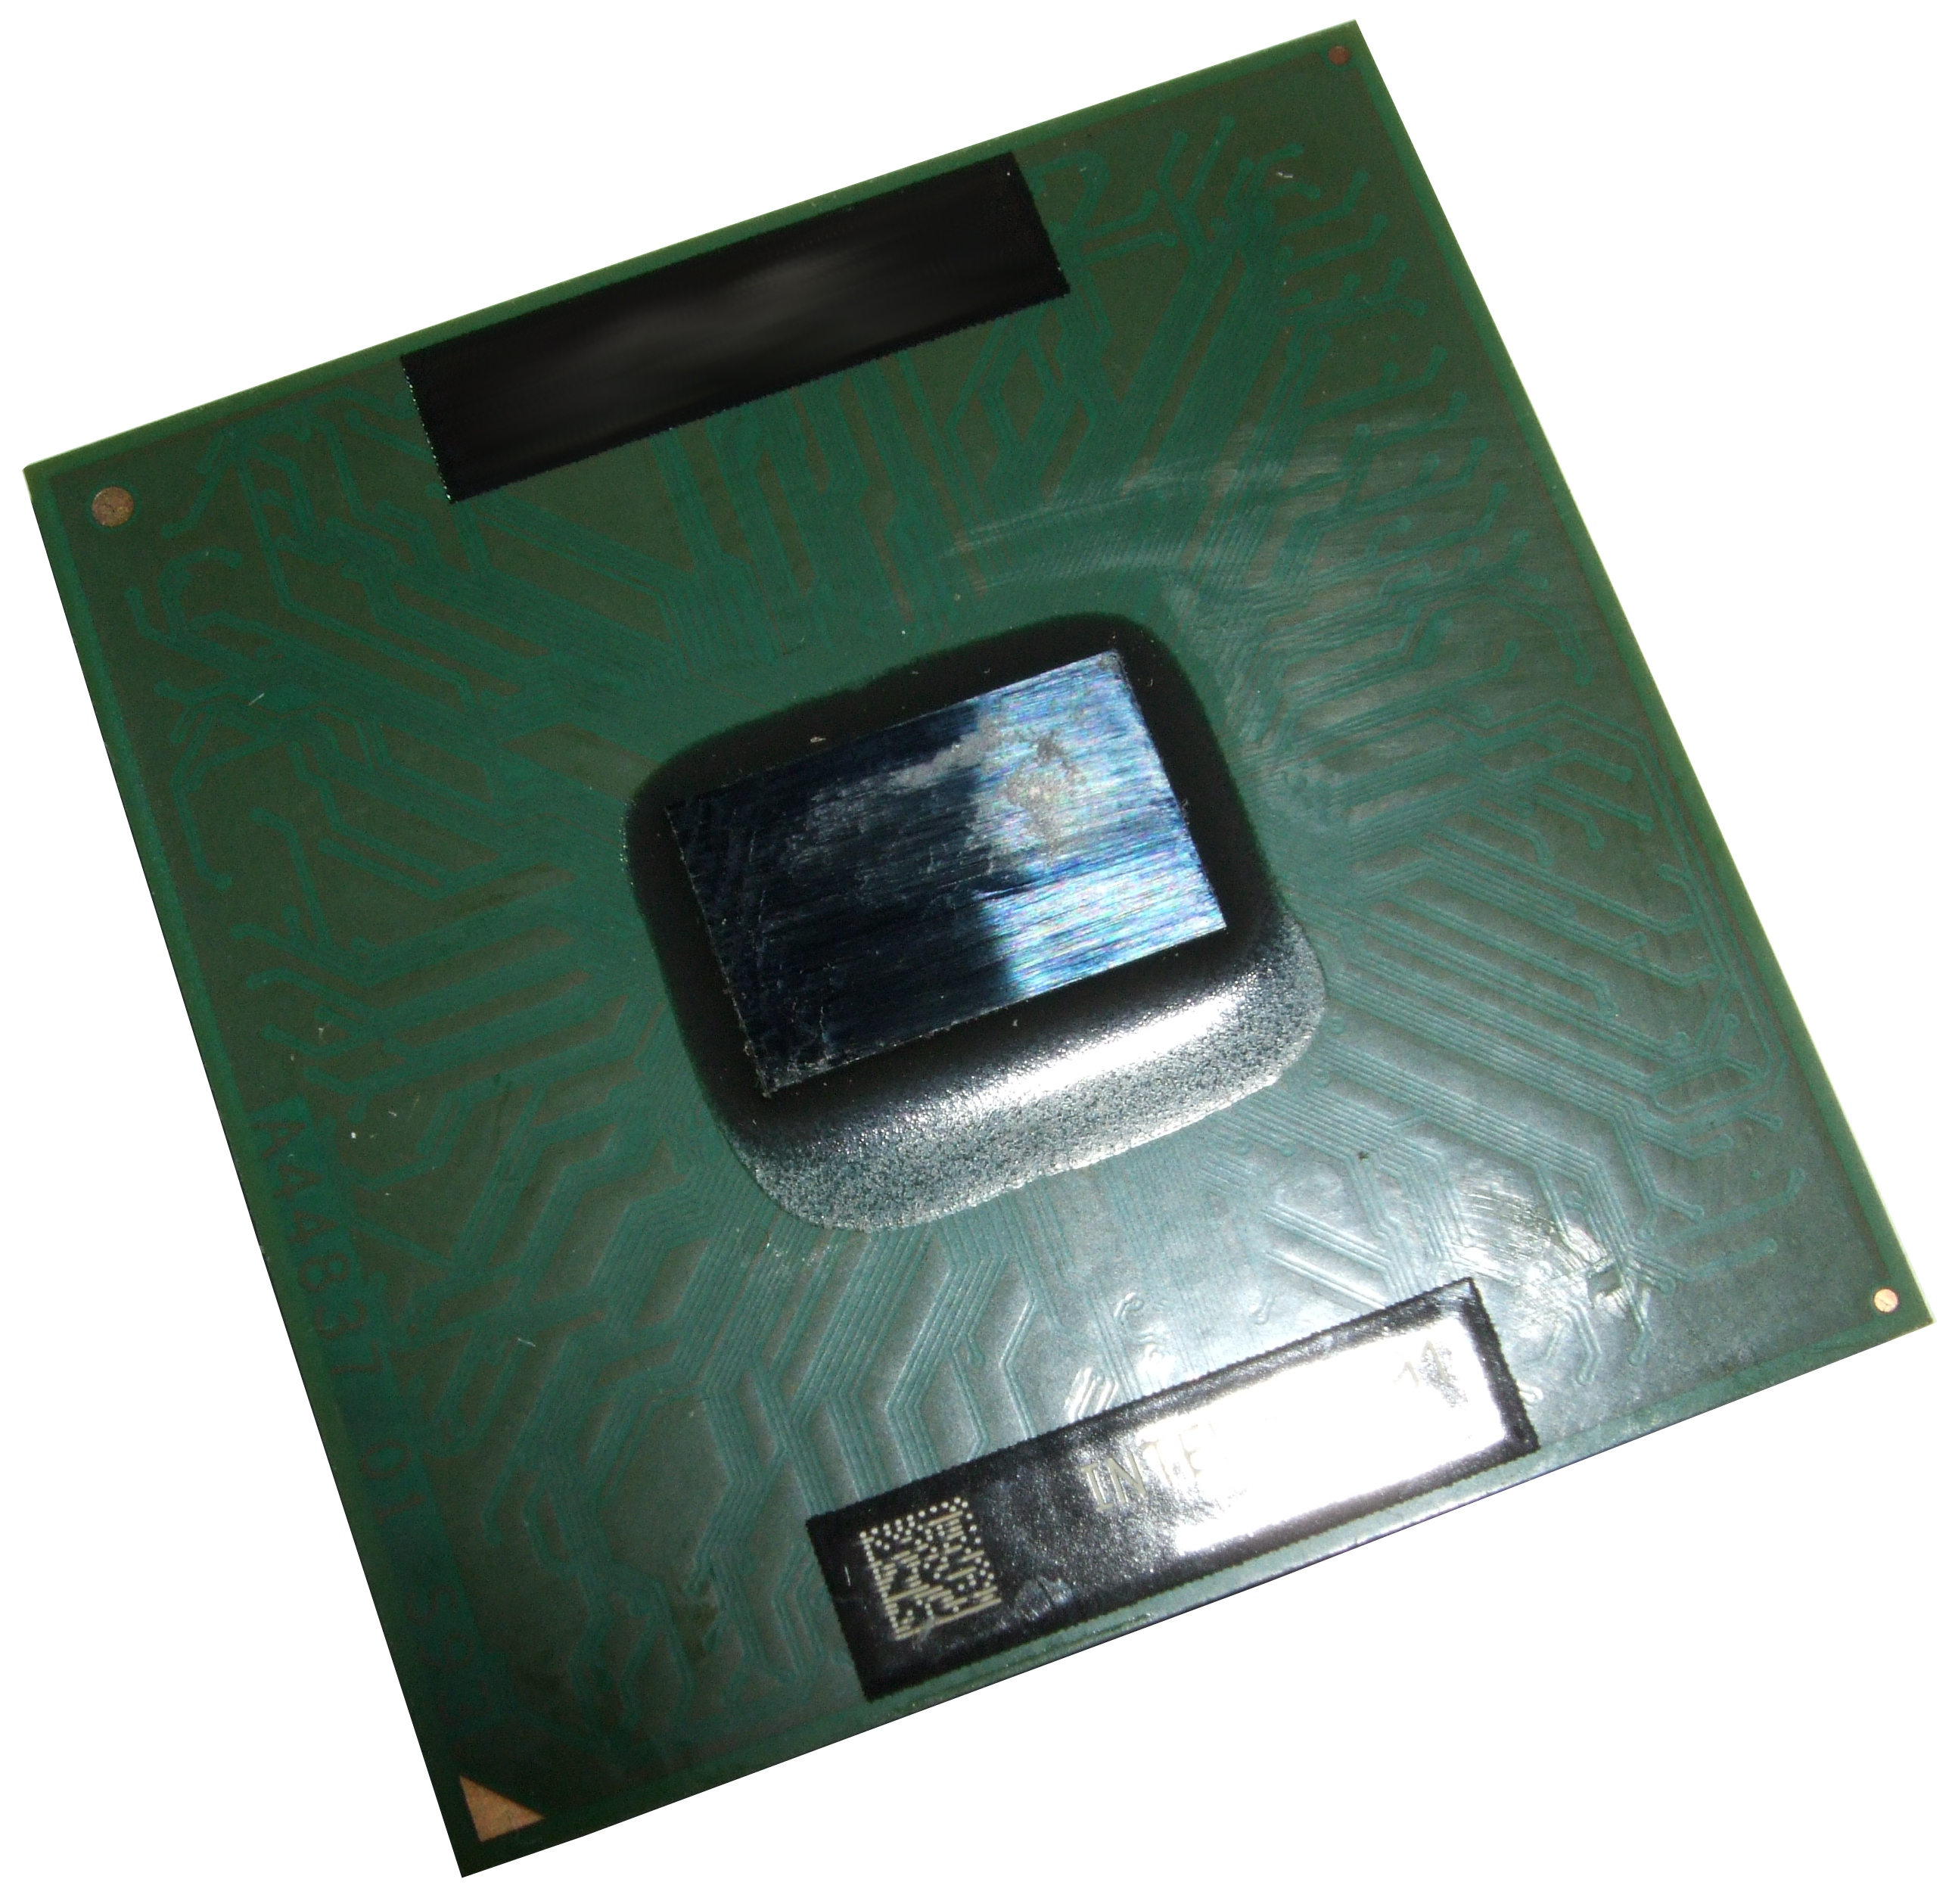 SLGJL Intel Pentium Dual Core Mobile T4400 Socket P 2.2GHz/1M/800